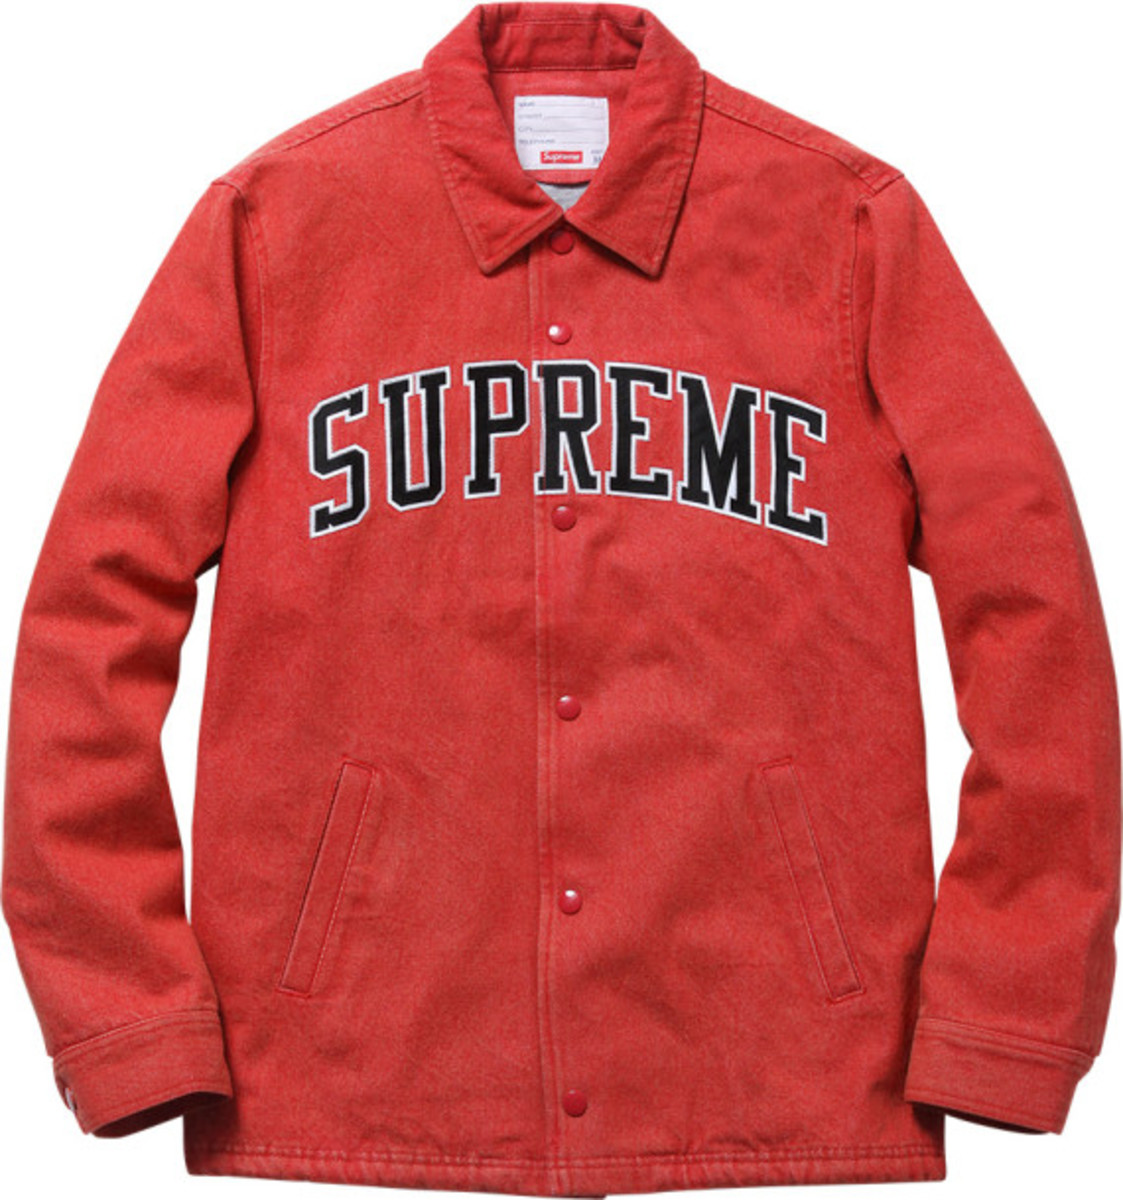 supreme-fall-winter-2013-apparel-collection-094